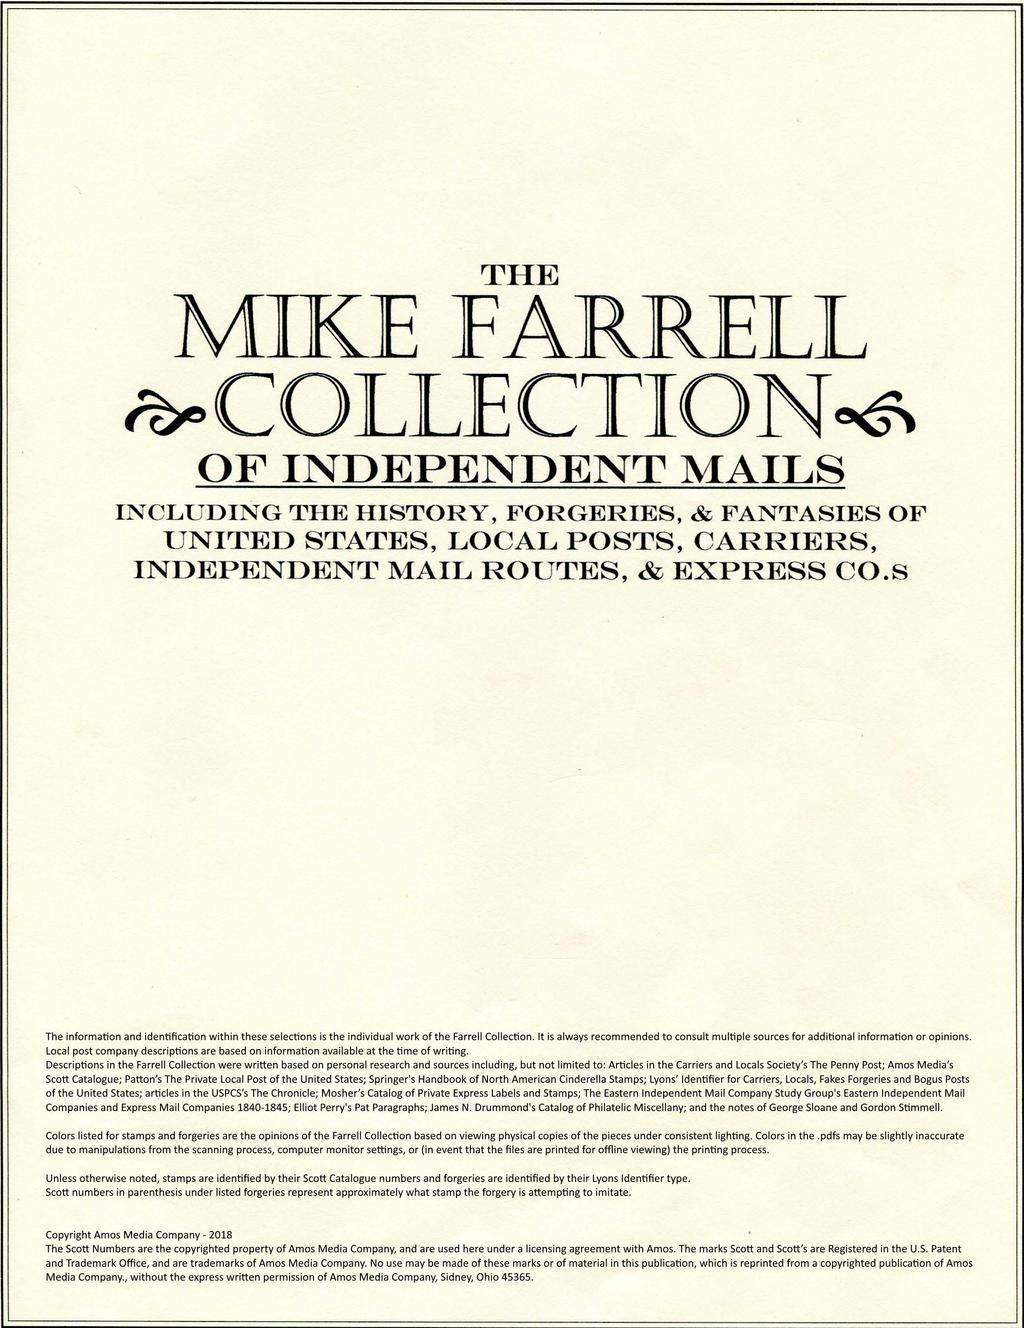 THE MIKE FARRELL ~COLLECTION~ OF INDEPENDENT MAILS INCL U DIN G THE HISTORY, FORGERIES, & FAN TASIES OF U NITED STATES, LOCAL POSTS, CARRIERS, INDEPENDENT MAIL ROU TES, & EXPRESS CO.